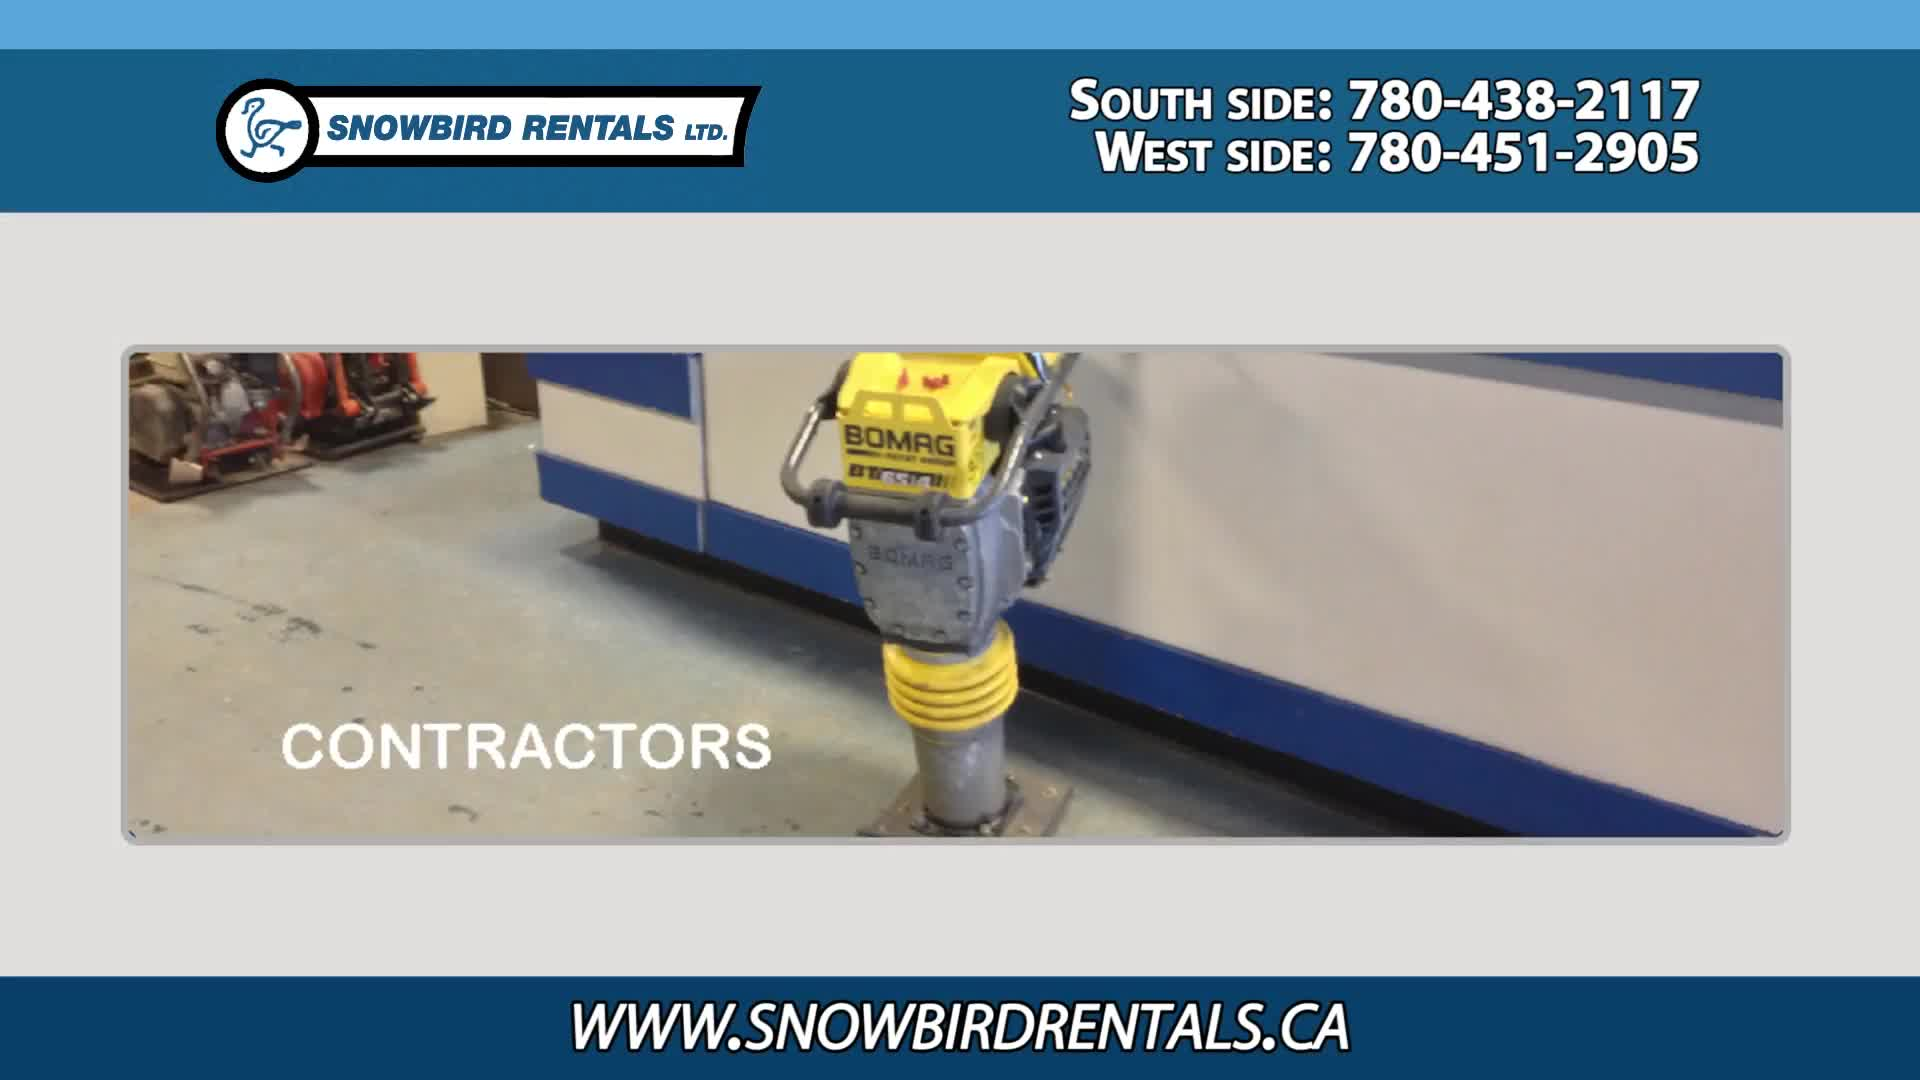 Snowbird Rentals Ltd - Contractors' Equipment Rental - 780-438-2117